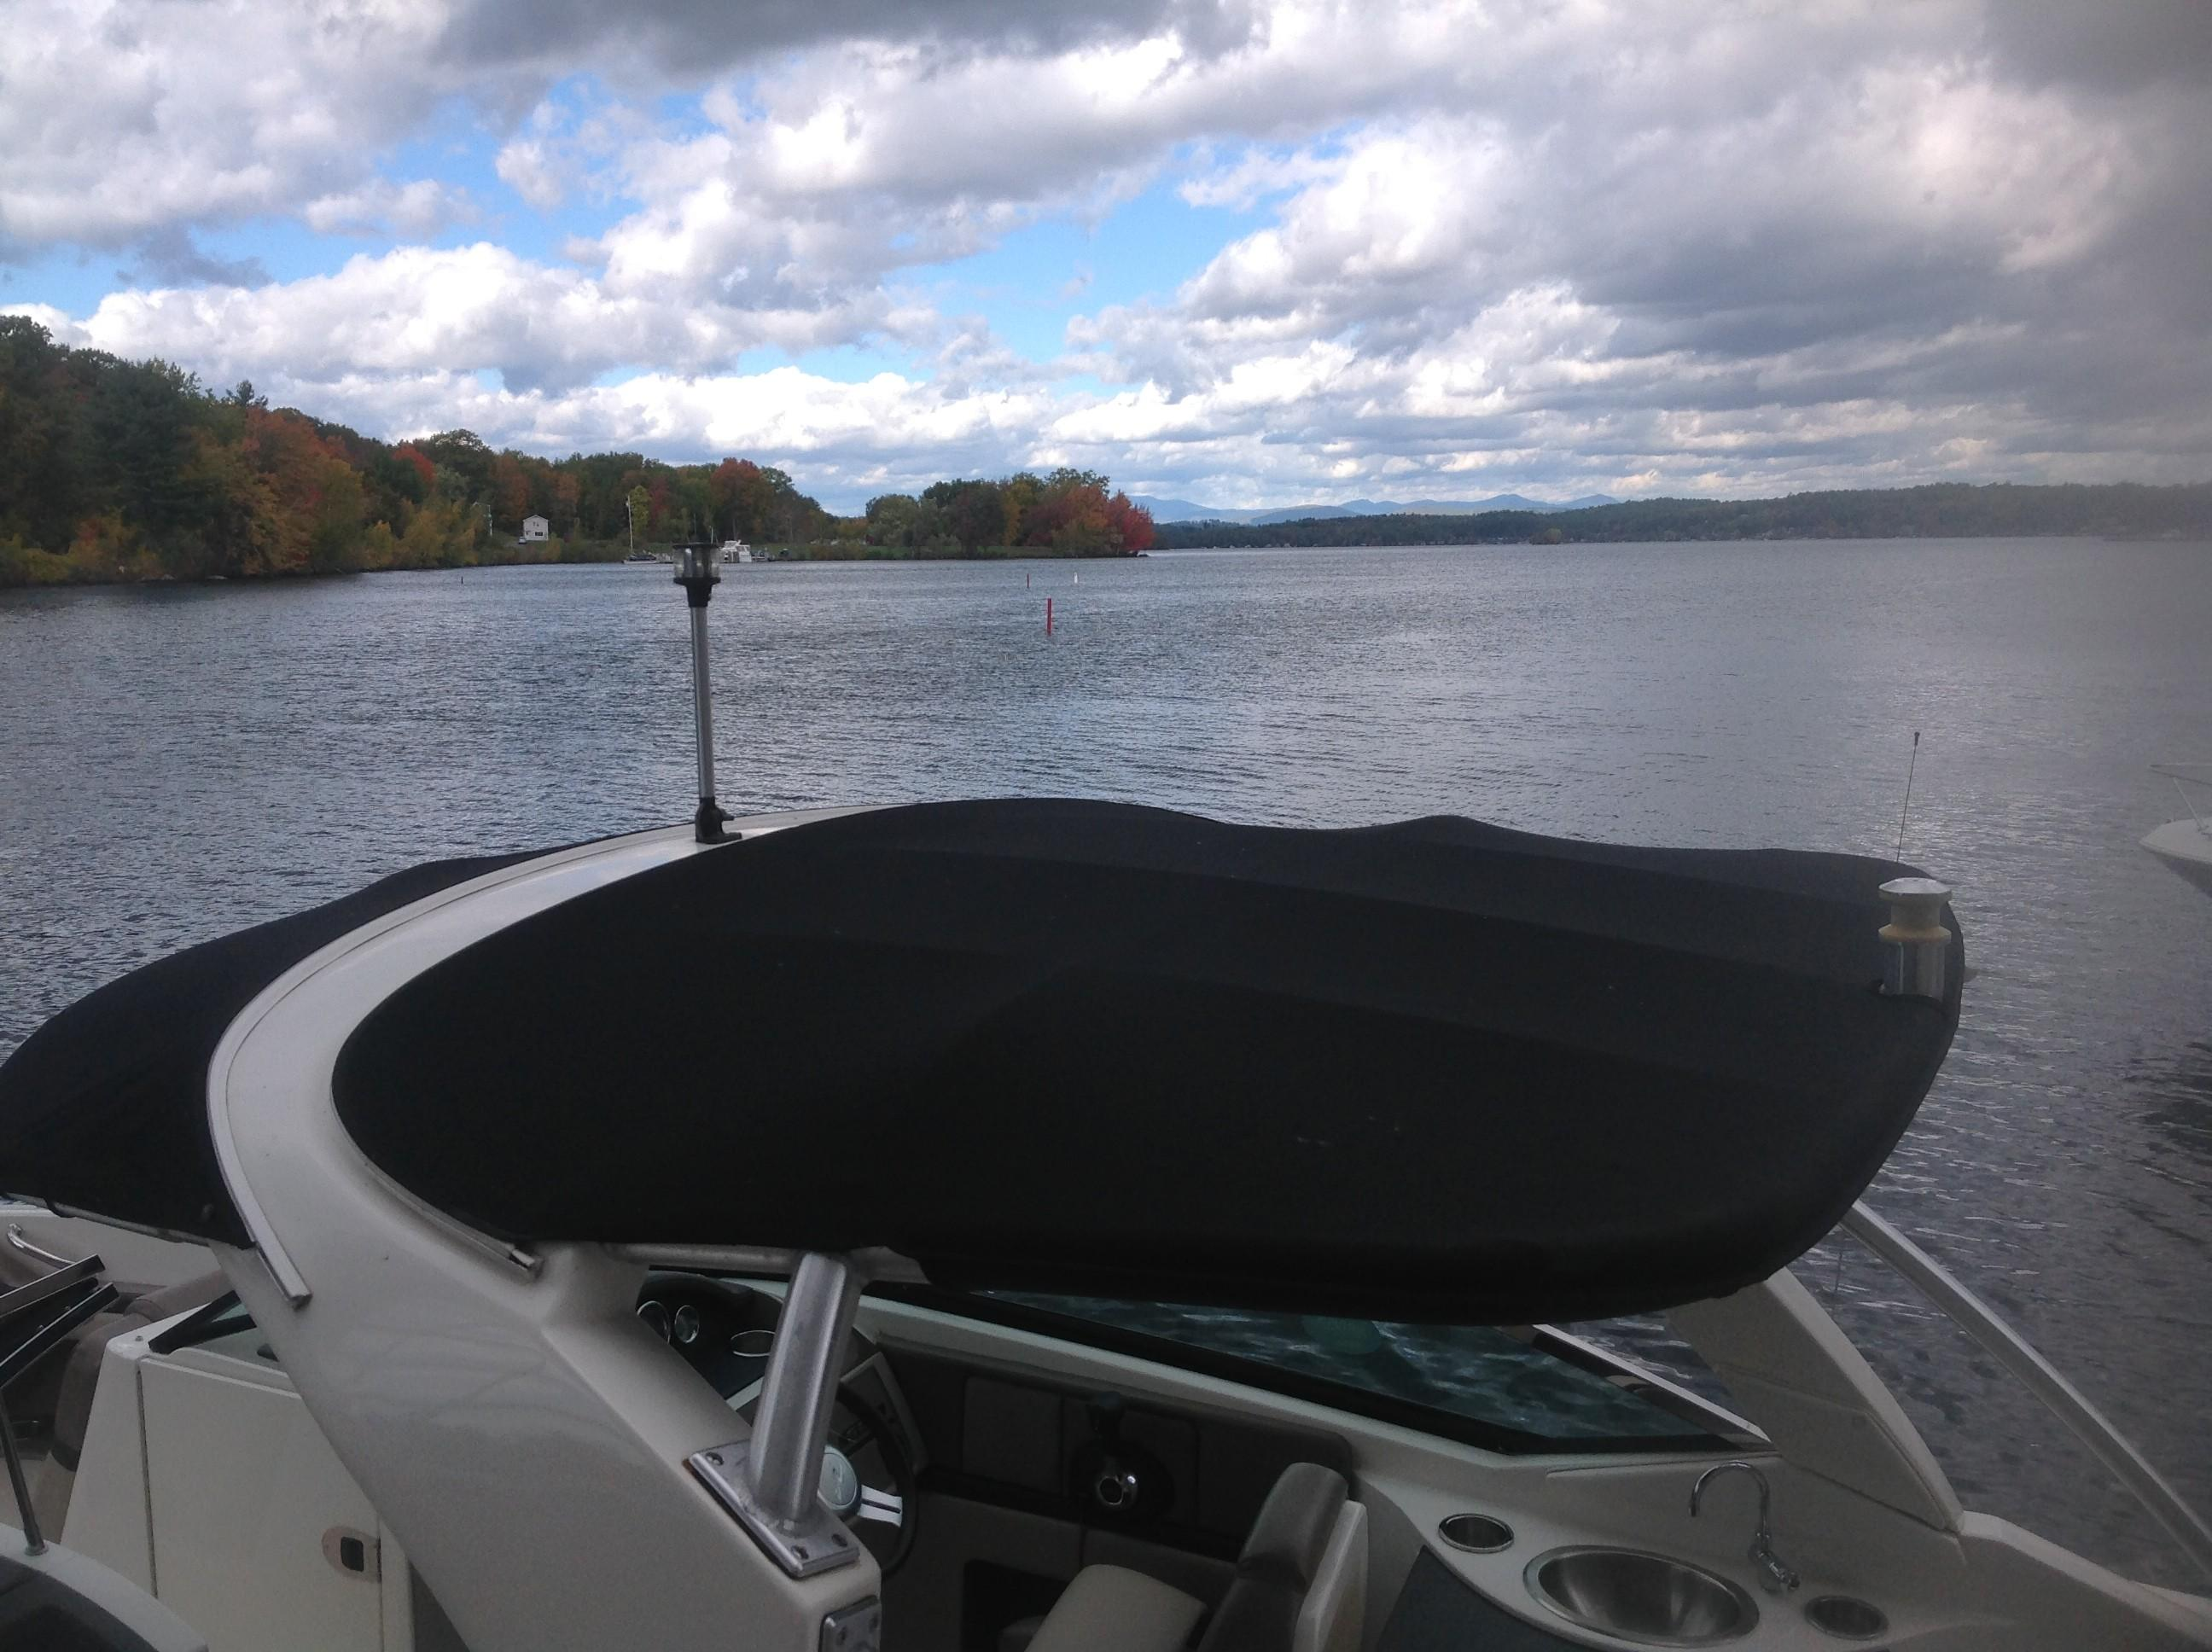 2011 Sea Ray boat for sale, model of the boat is 270 SLX & Image # 8 of 13